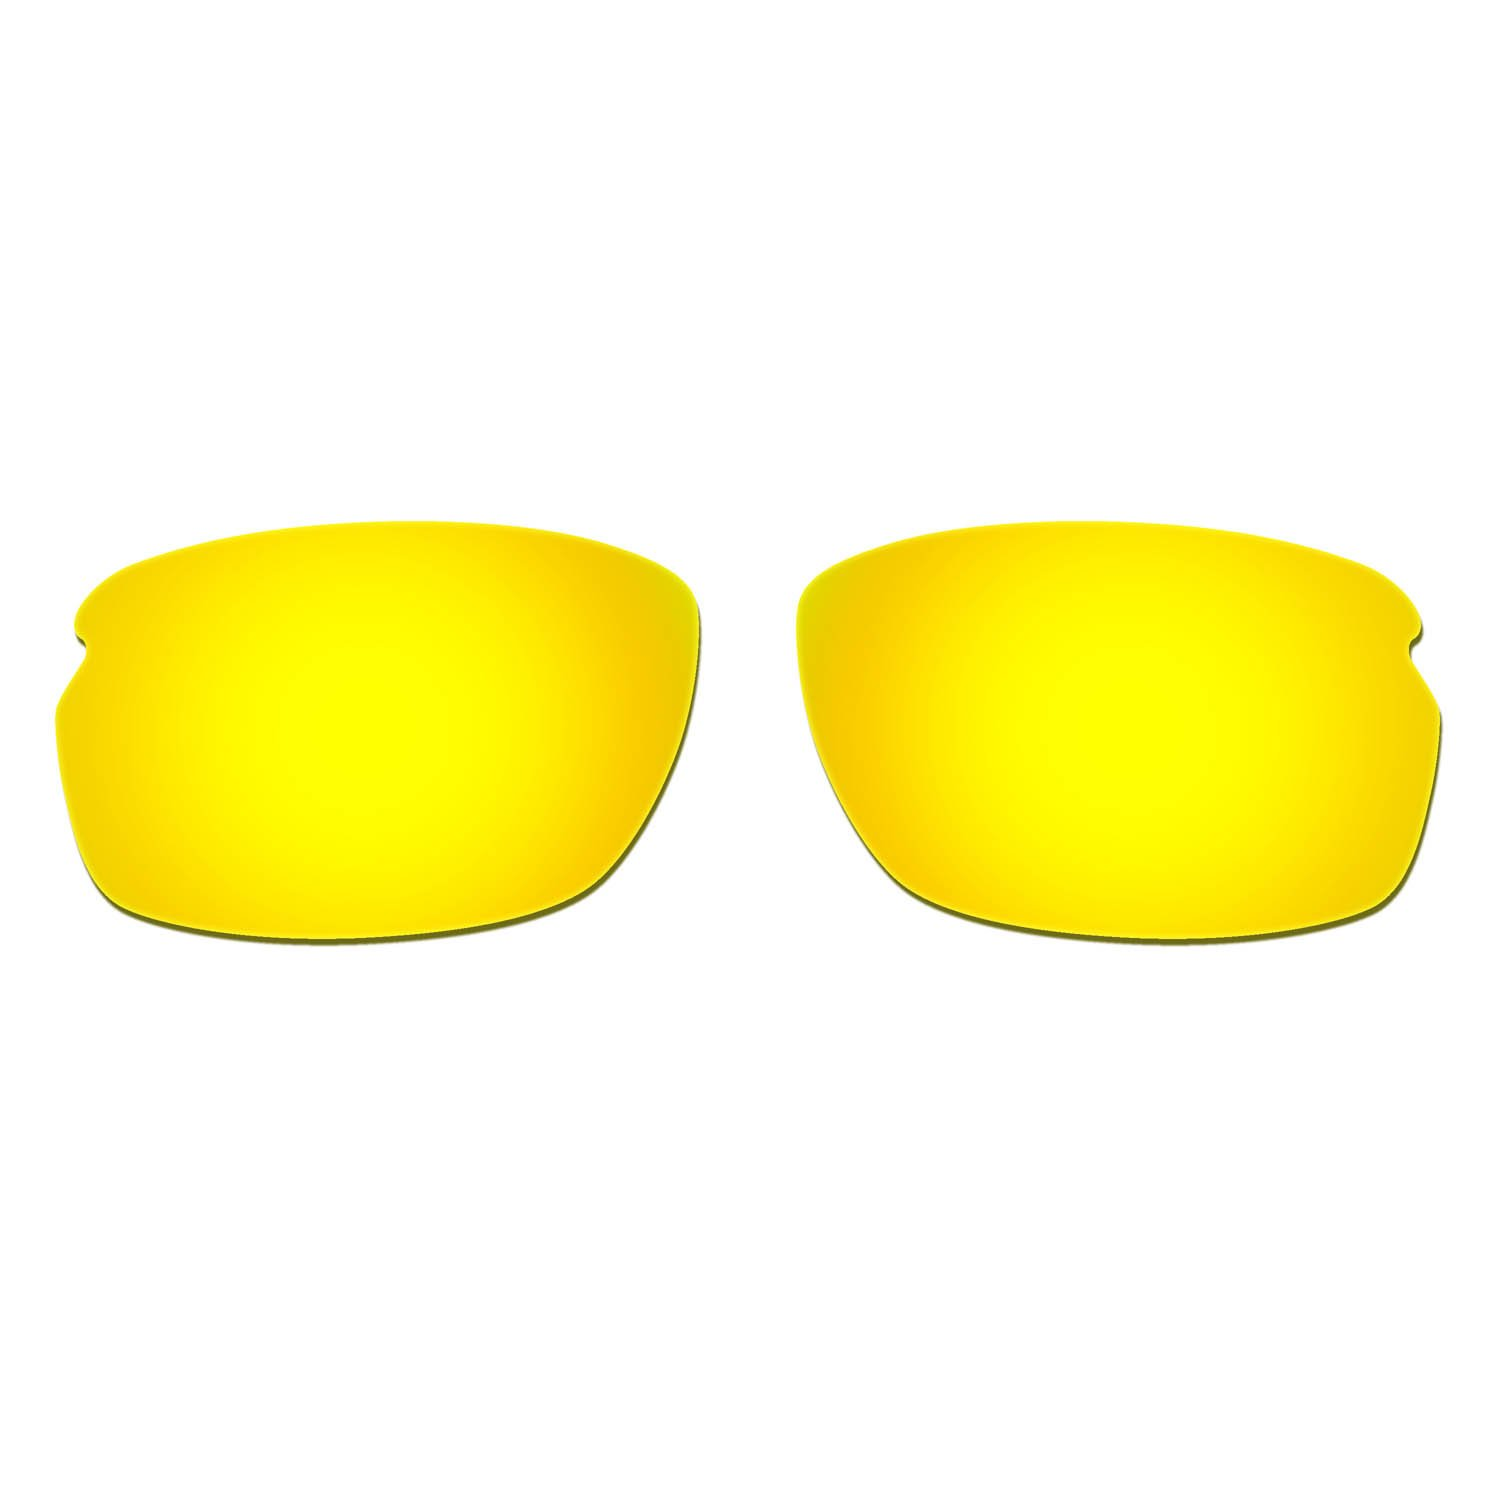 f70f0049034 Amazon.com  Hkuco Mens Replacement Lenses For Oakley Carbon Shift Sunglasses  24K Gold Polarized  Clothing